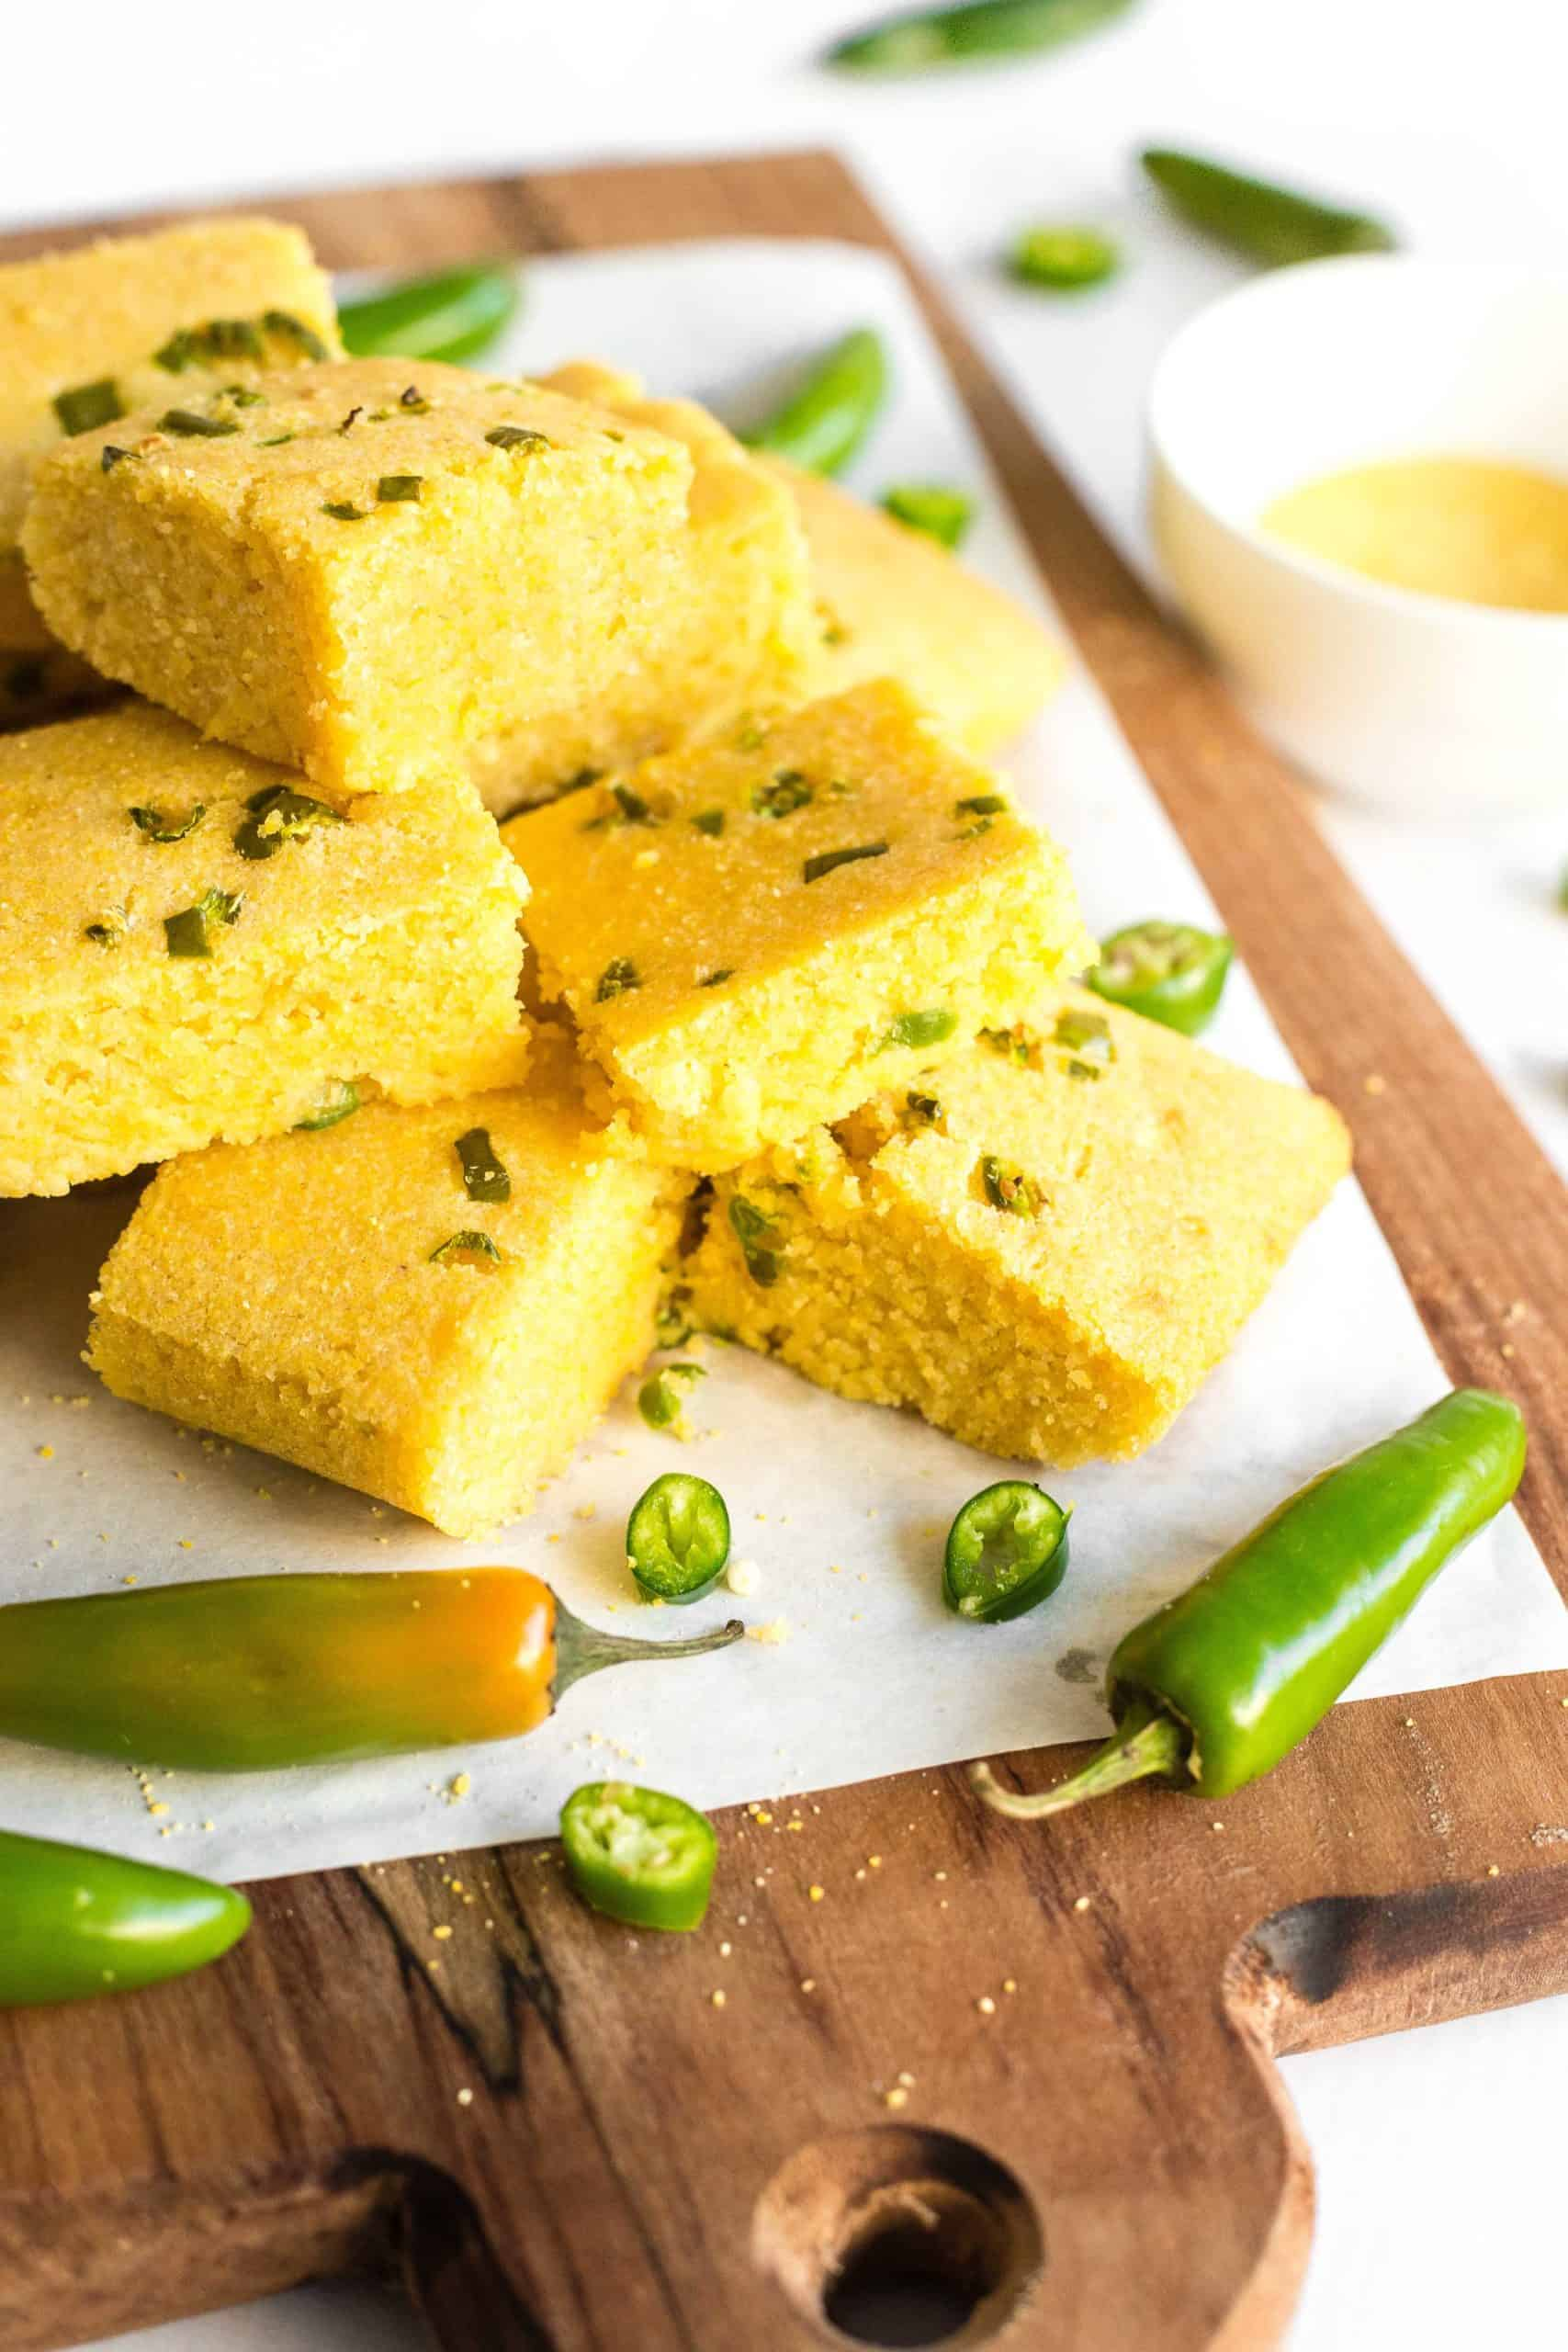 A stack of gluten-free jalapeño cornbread squares and fresh jalapeño peppers on a parchment-lined wooden board.